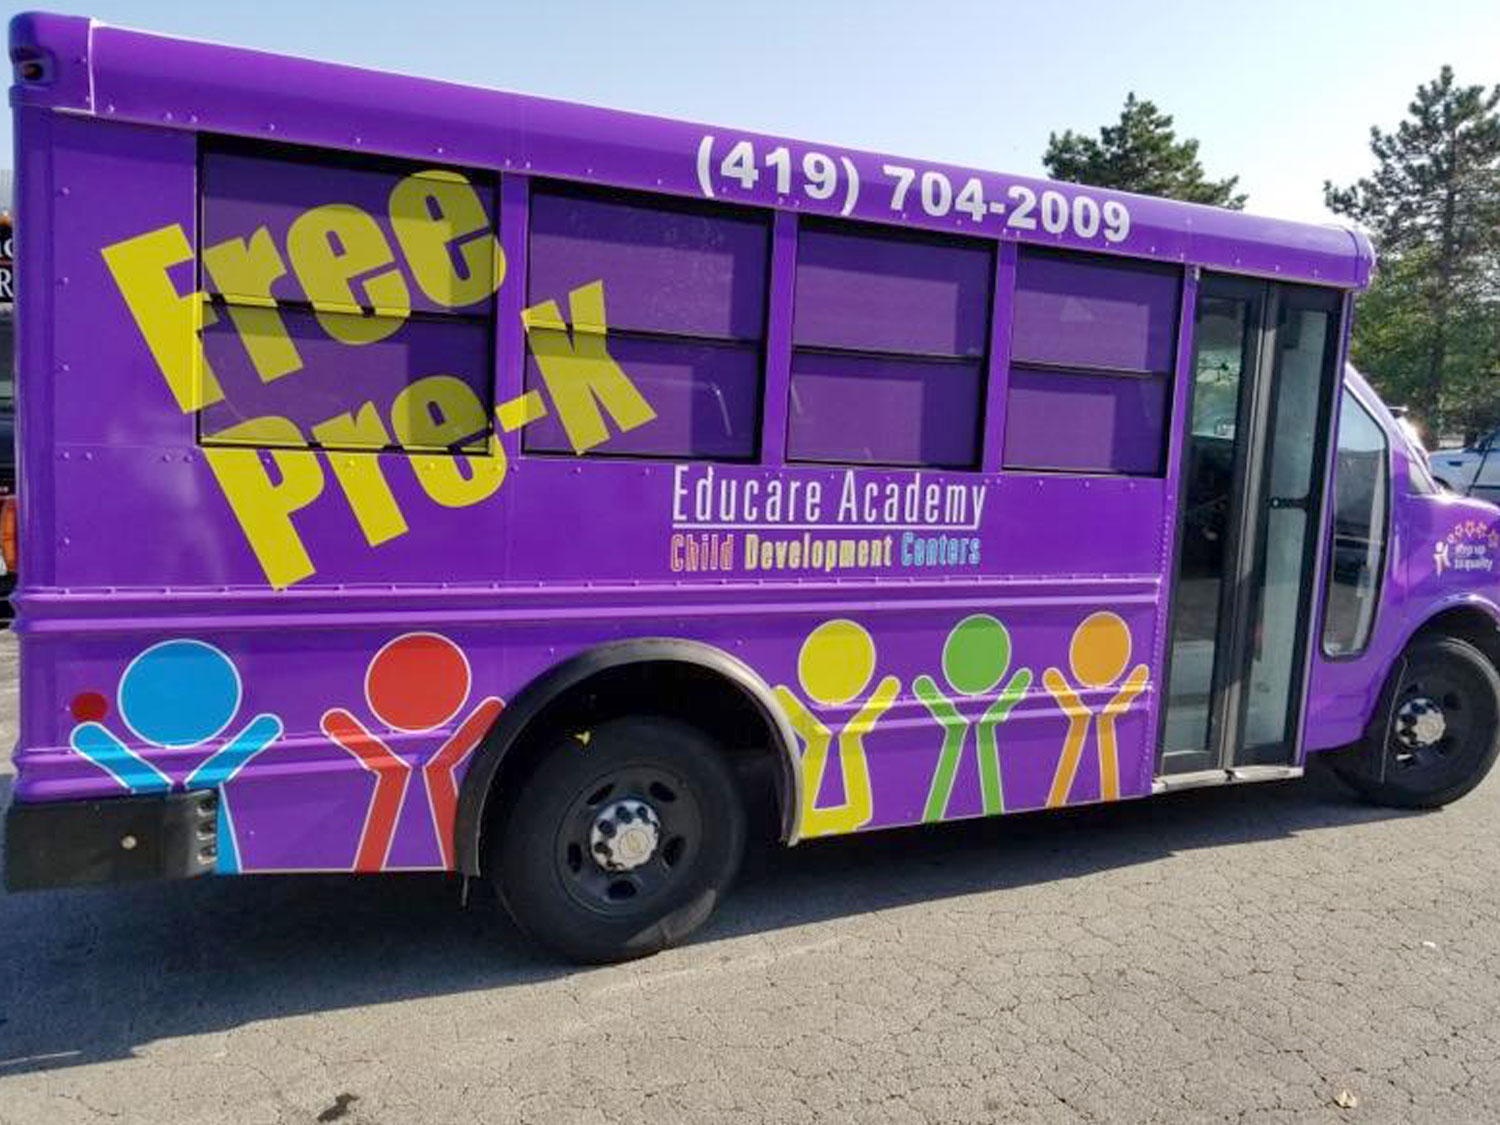 Educare Academy Child Development Centers Bus Graphics